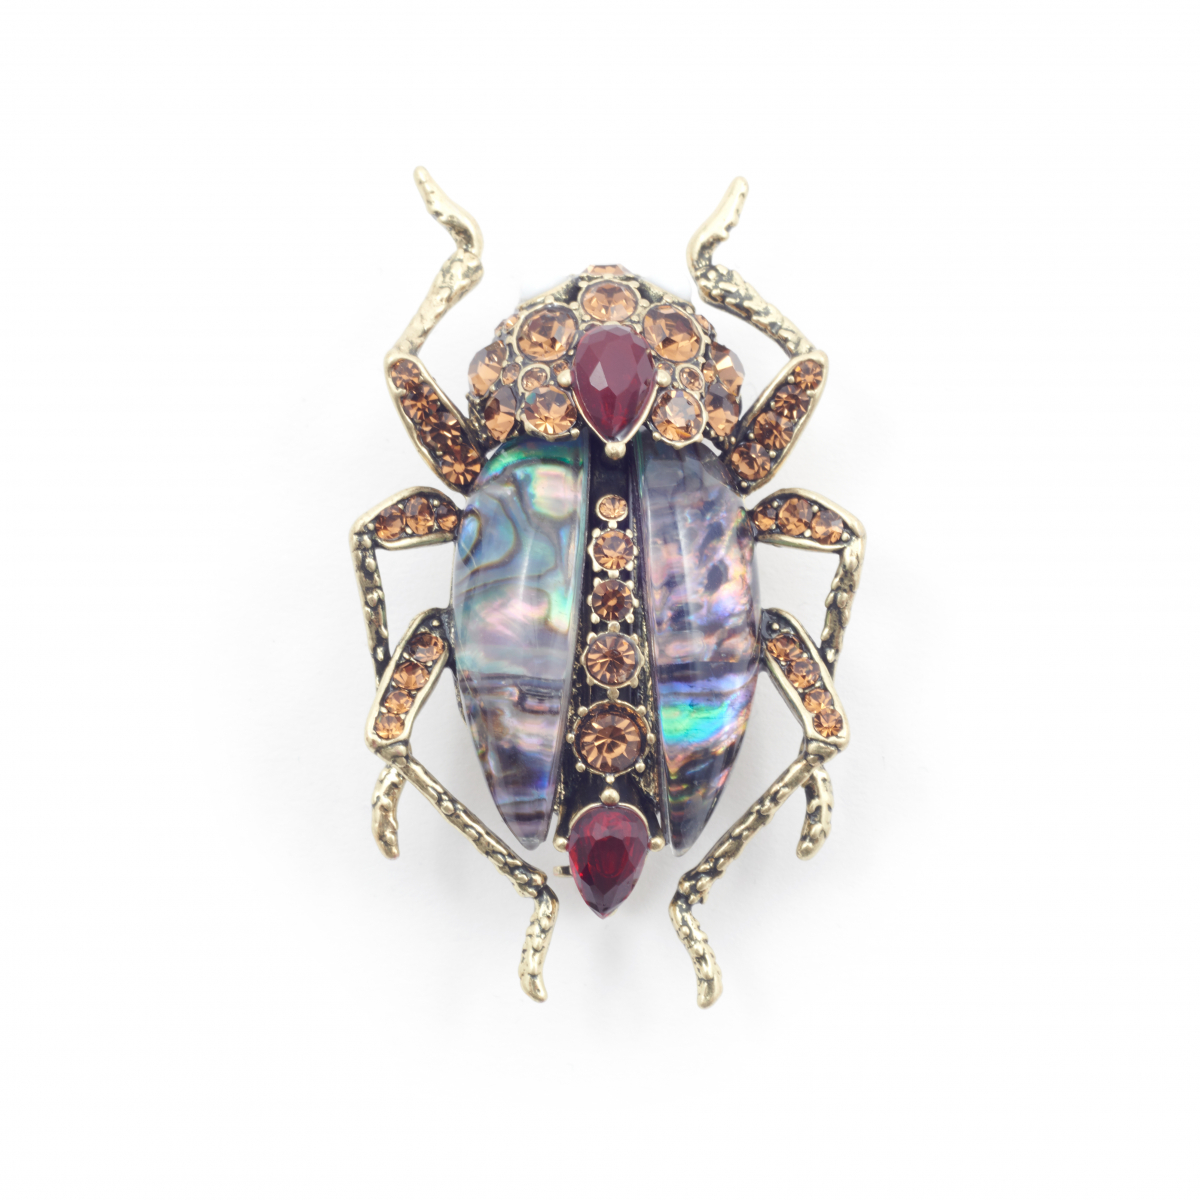 The Bejewelled Beetle Statement Brooch